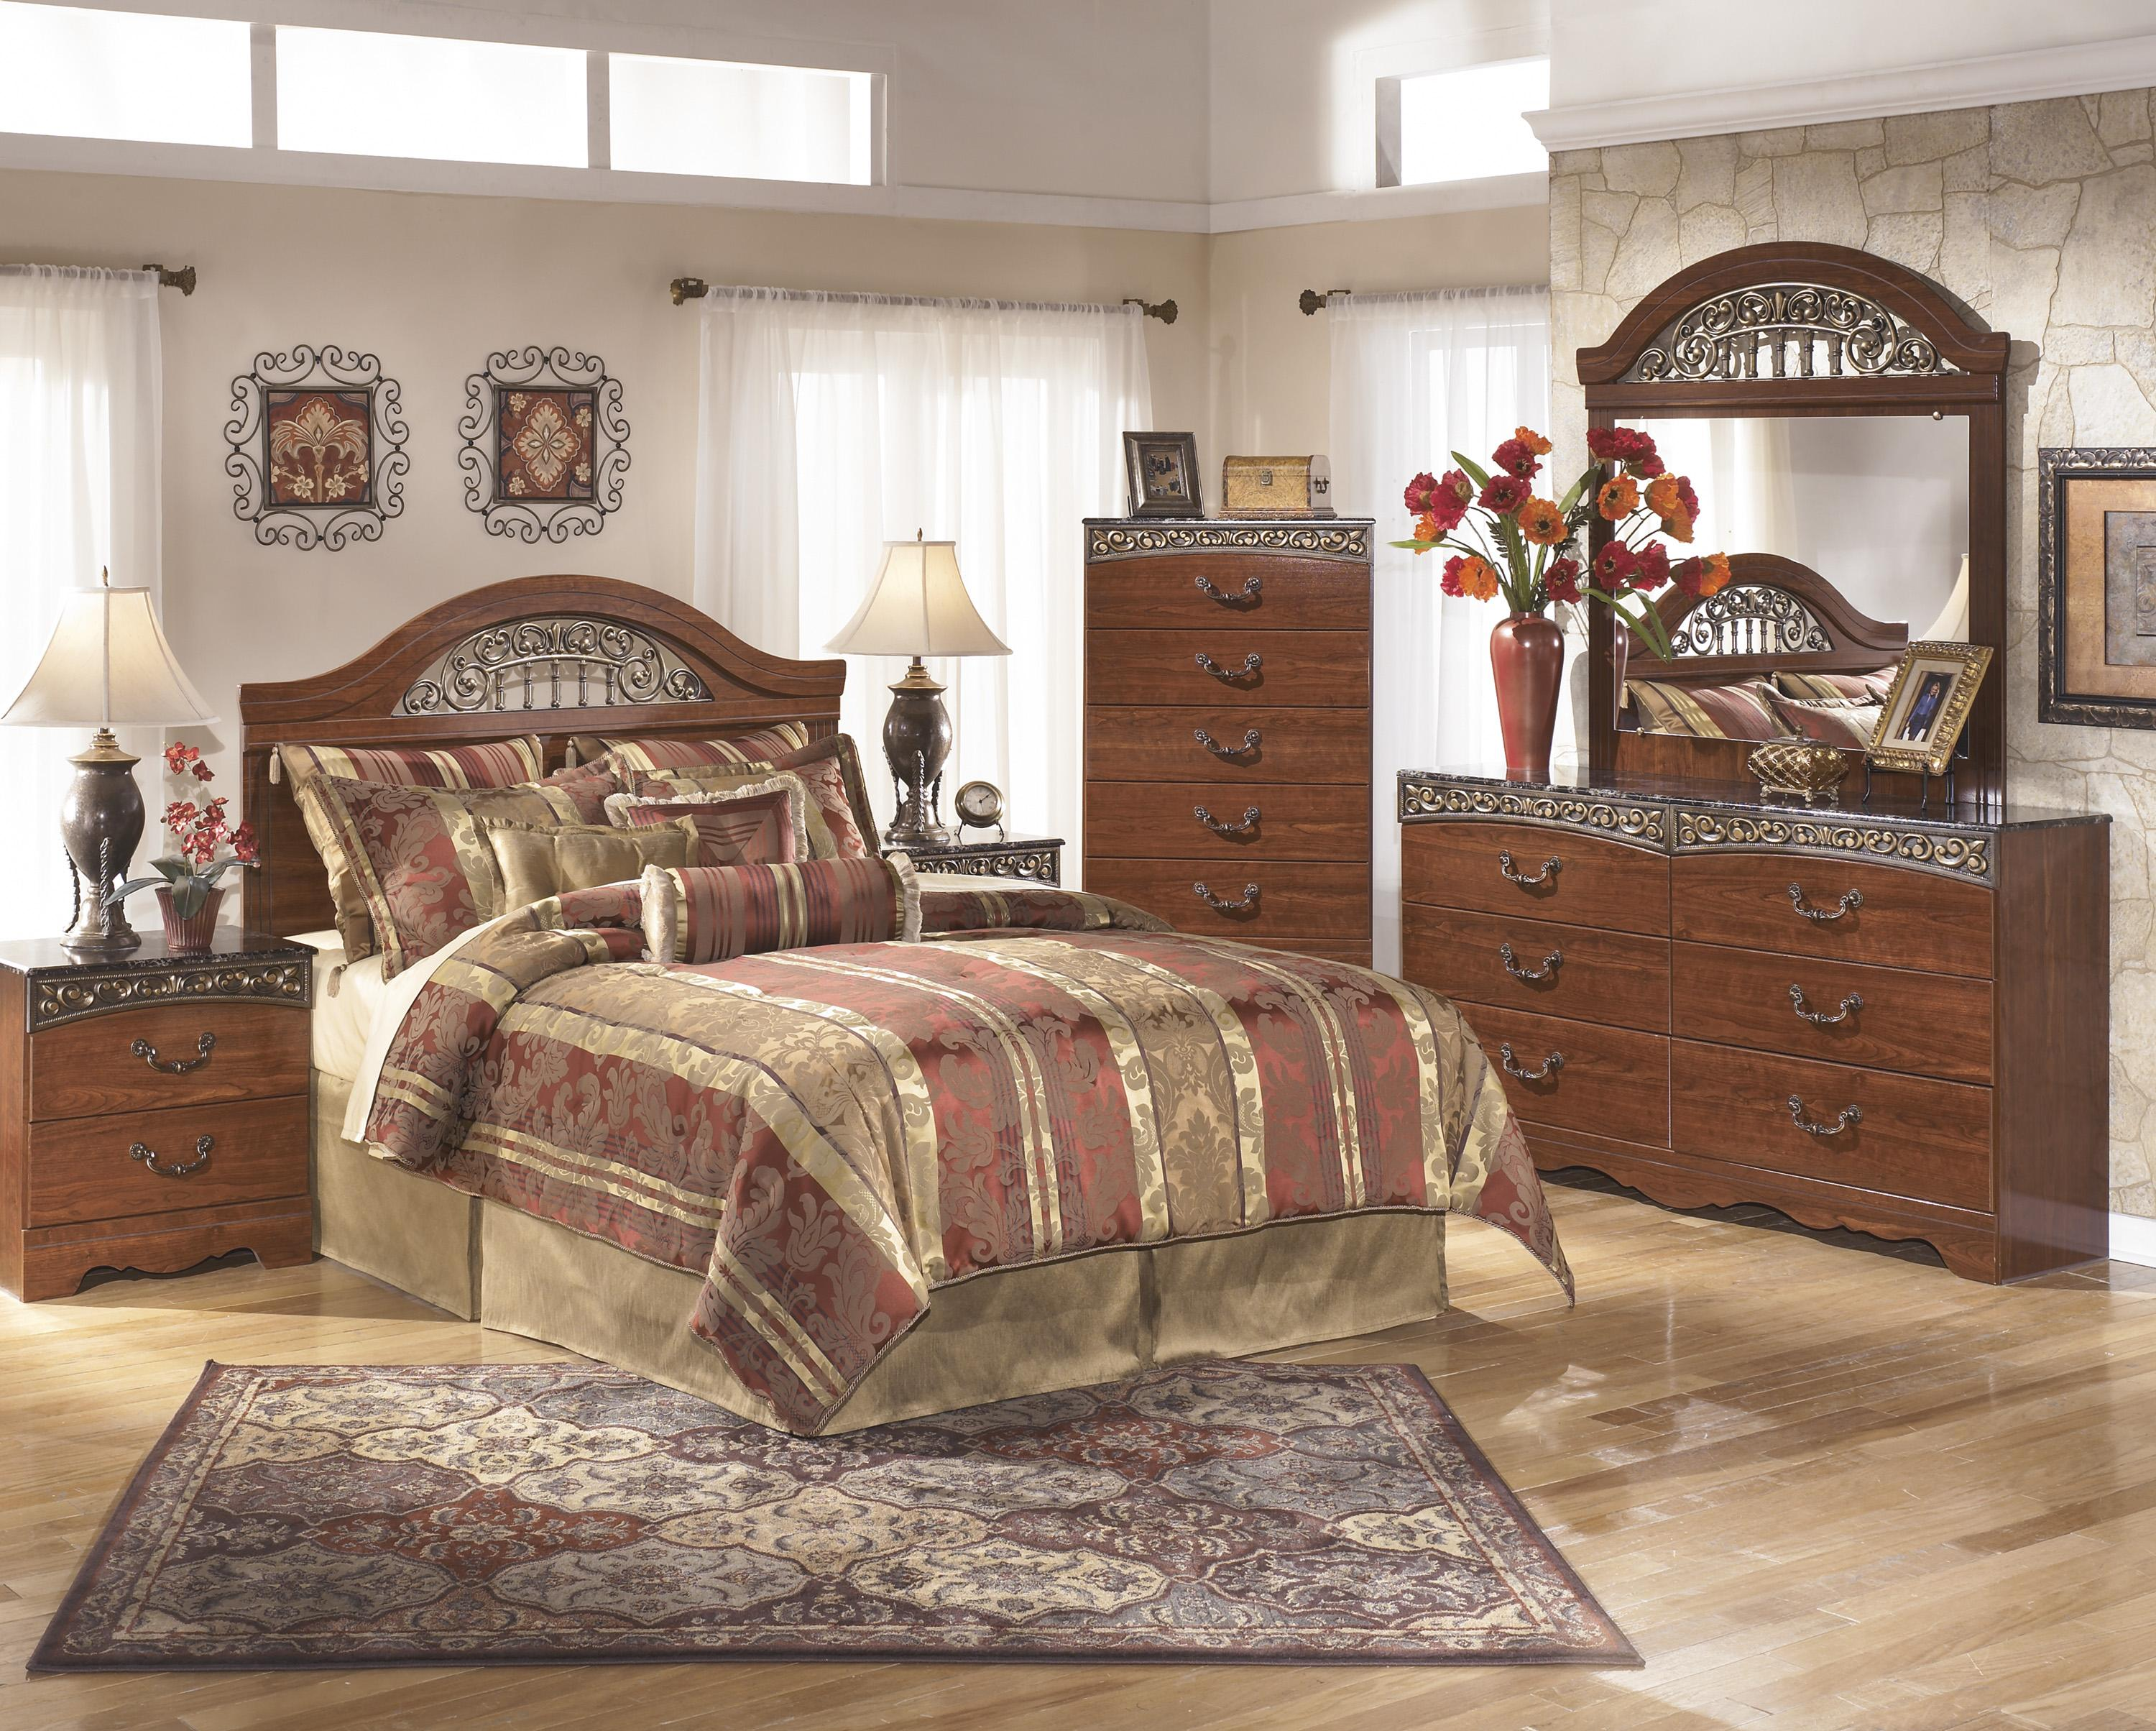 Signature Design by Ashley Fairbrooks Estate Queen Bedroom Group - Item Number: B105 Q Bedroom Group 3